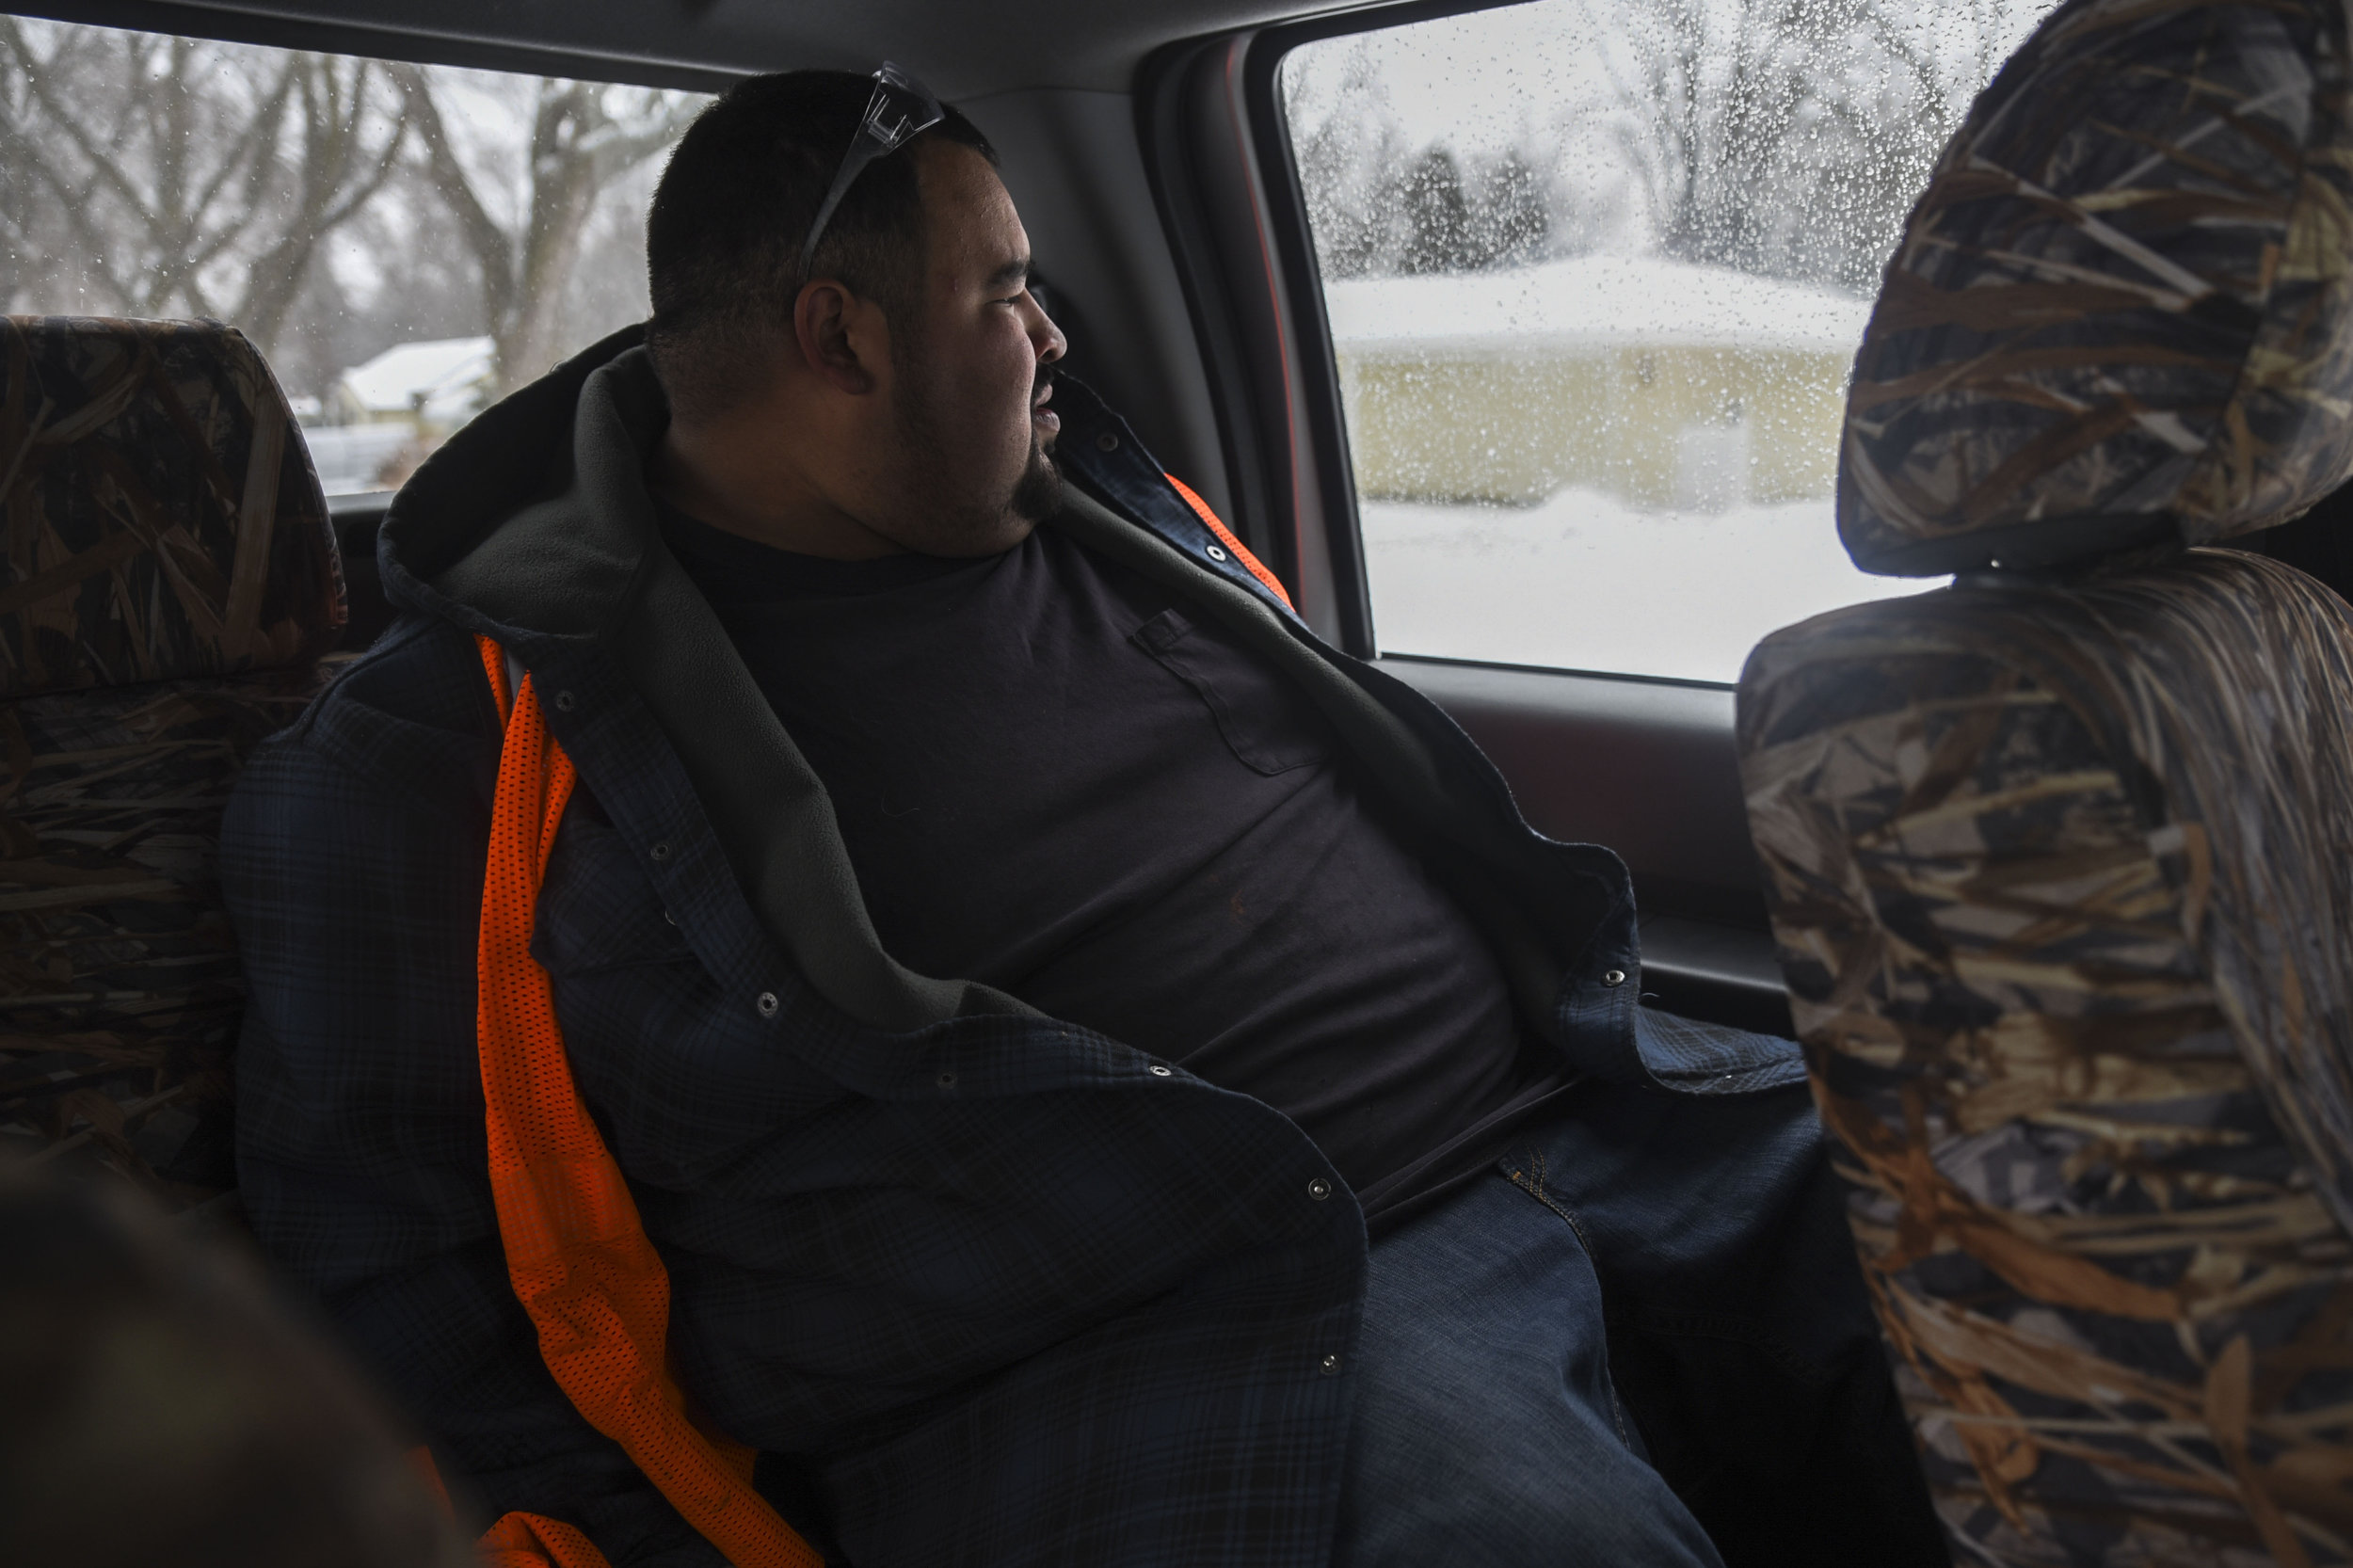 Martin Bravo, who has been in jail since early January and plans to leave in April, looks out the window while riding in the recycling pickup truck. Bravo is a part of the Sentencing to Service program, which will give him the opportunity to be released early from jail, dependent upon his eligibility, by volunteering with the recycling program through Kandiyohi County Community Service.